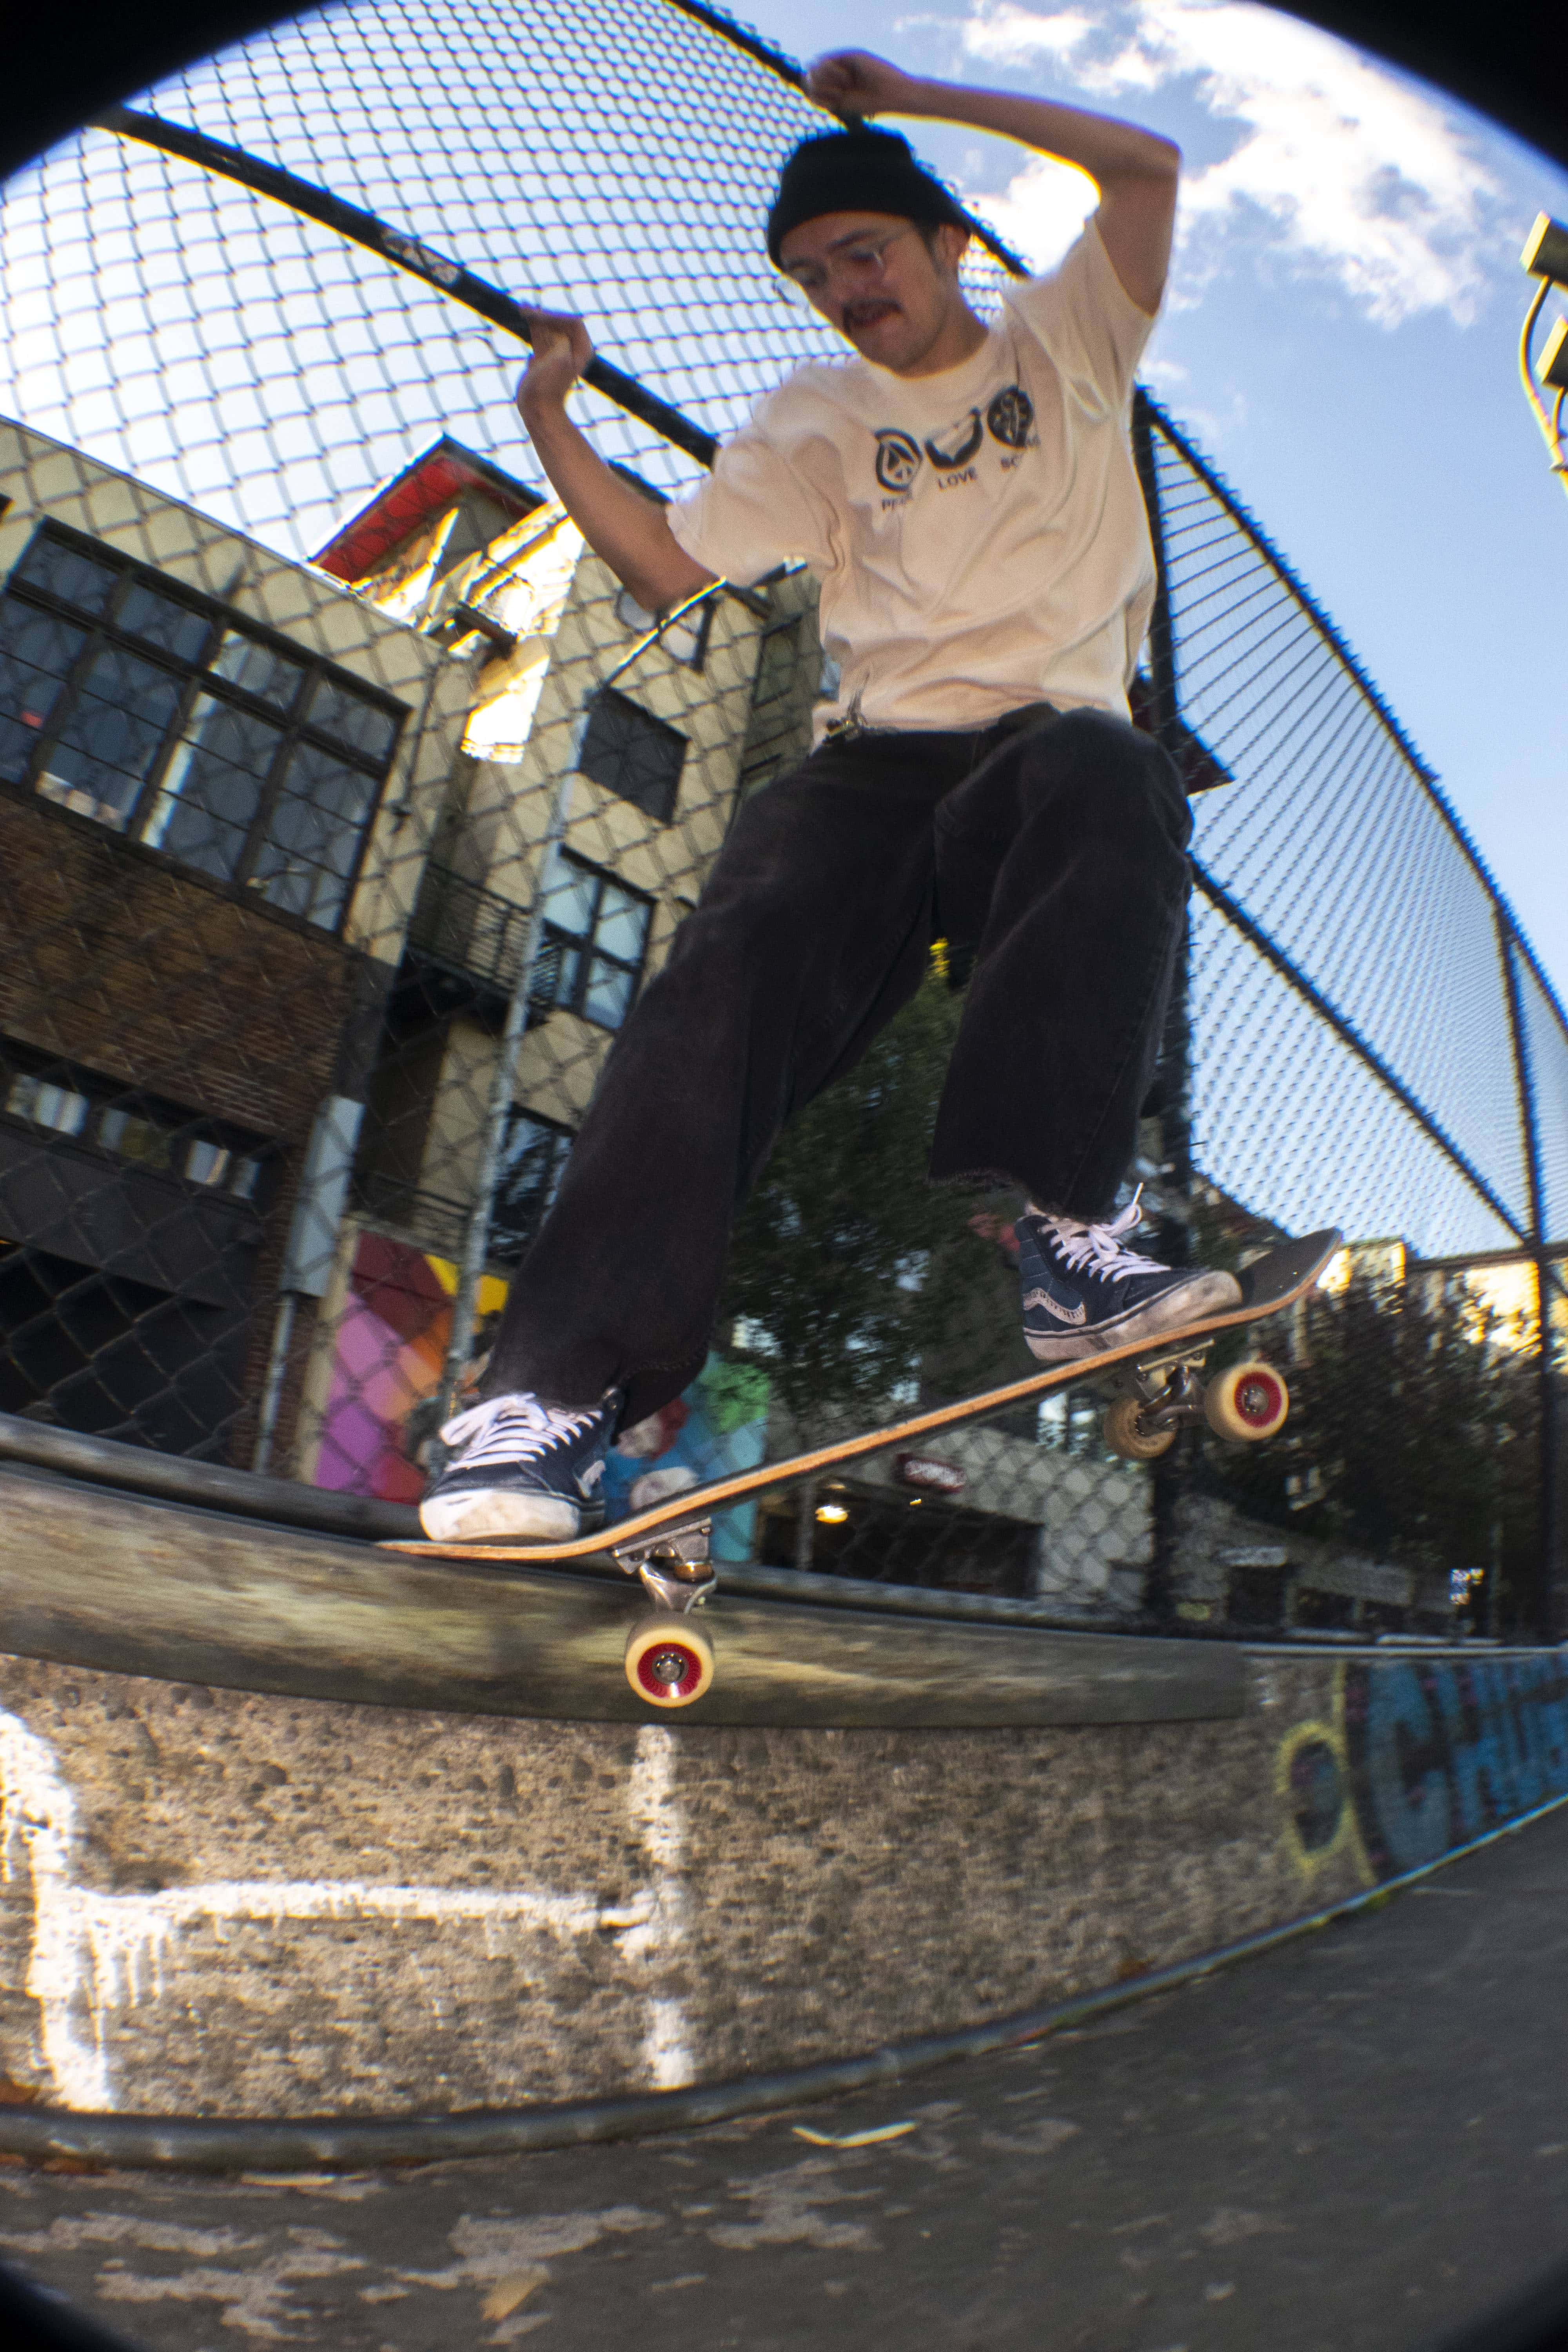 Image of a skateboard grinding against a curb.